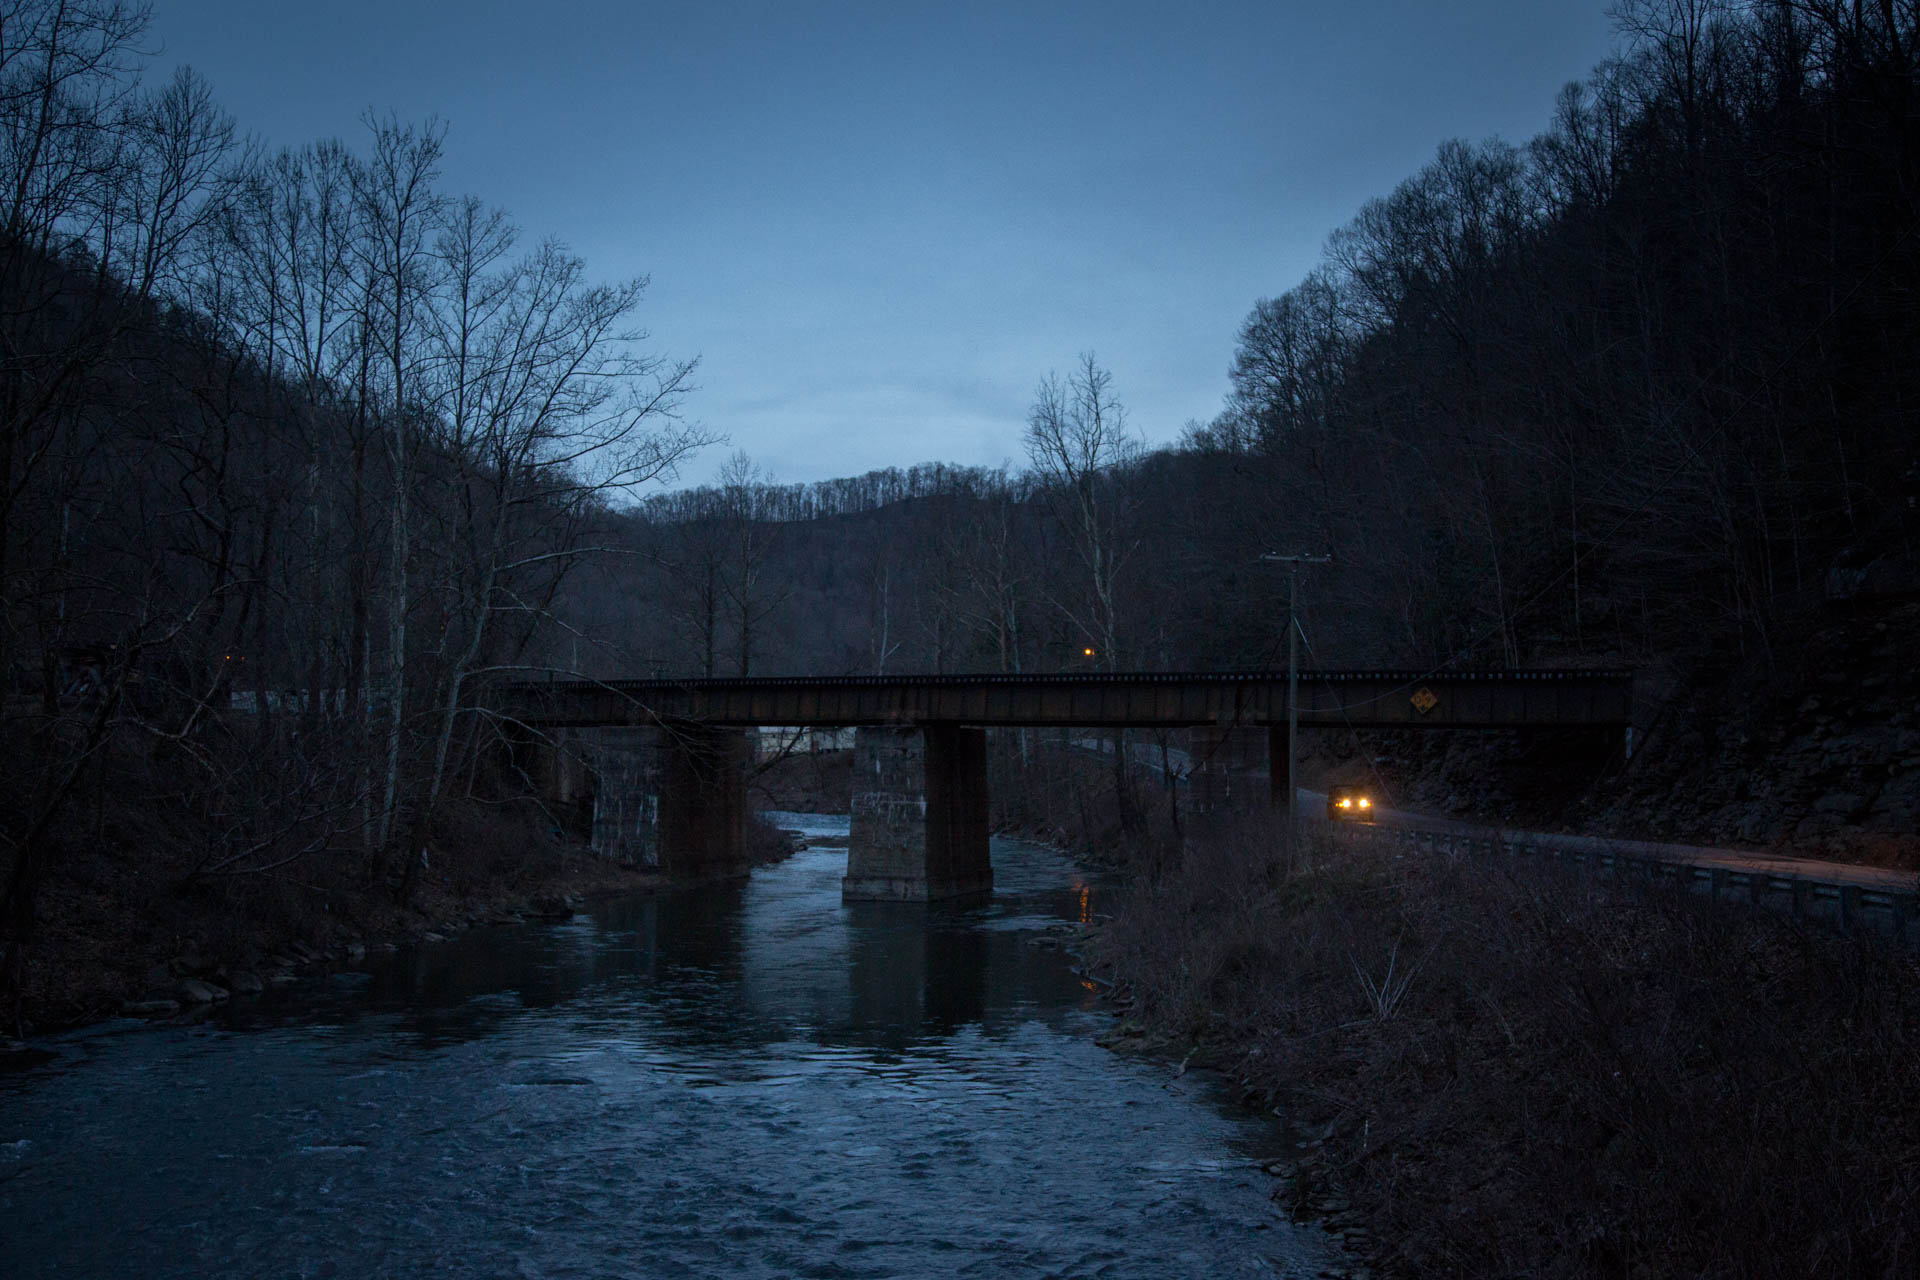 ns-tug-fork-river-bridge-pocahontas-roderfield-wv-2270